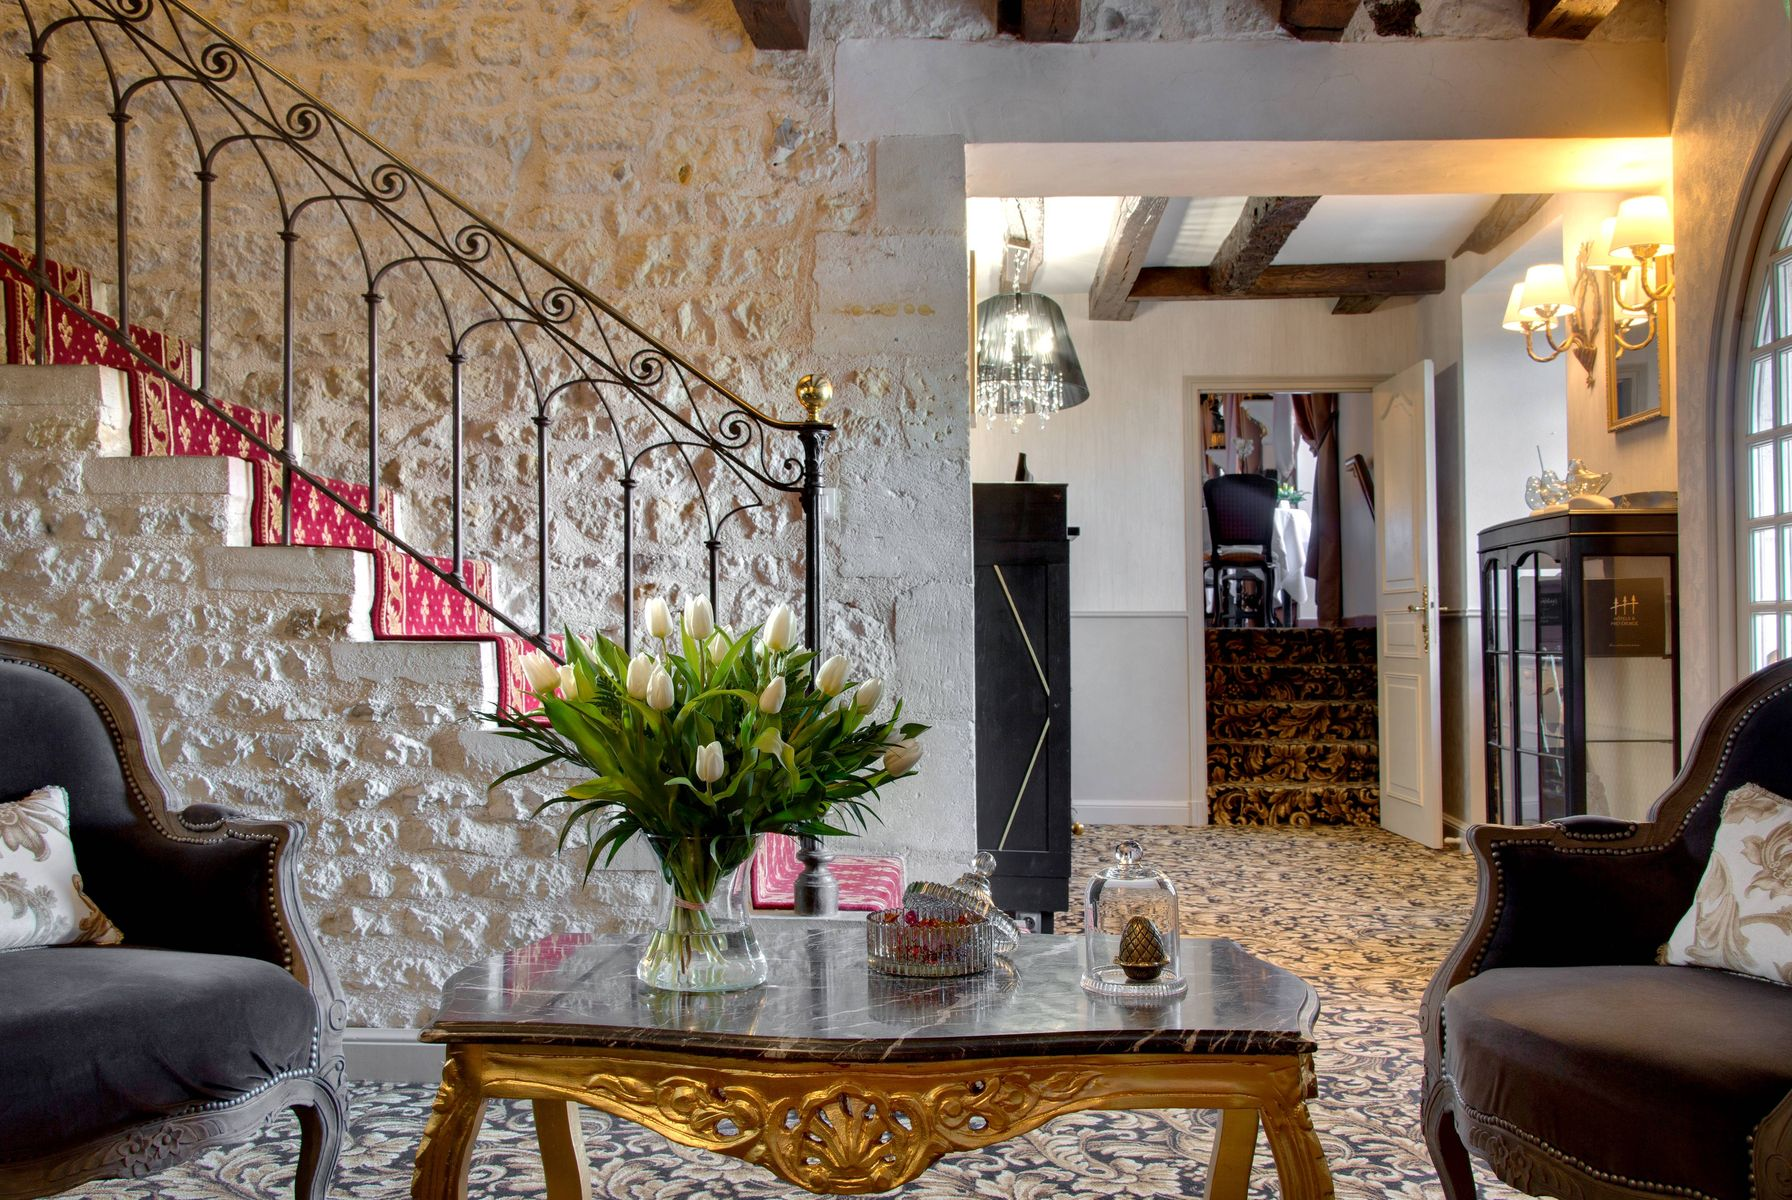 Hôtel Saint-Martin | 4 star hotel | In Nouvelle Aquitaine, 20 minutes from Niort, France | Contacts